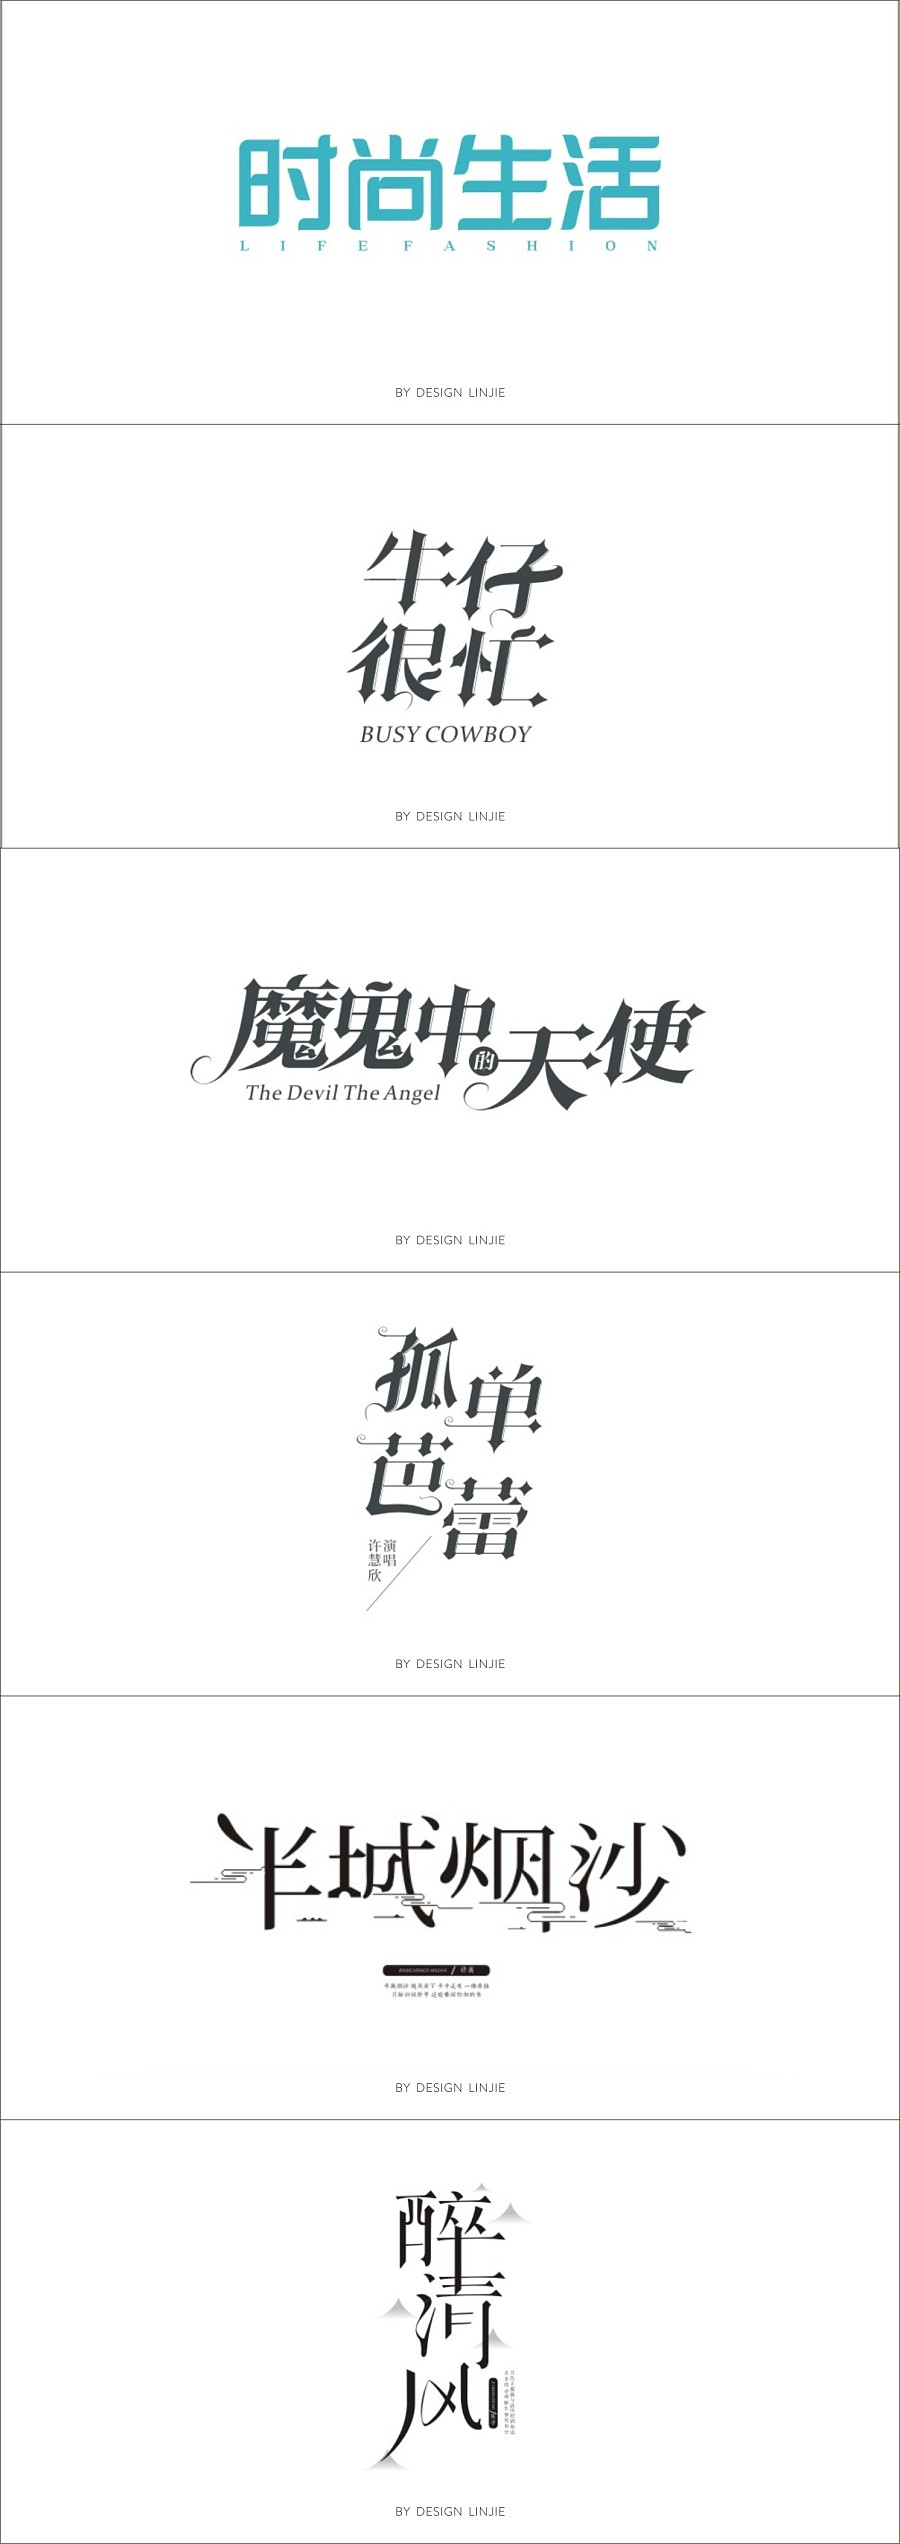 chinesefontdesign.com 2017 01 31 19 17 00 100+ Wonderful idea of the Chinese font logo design #.113